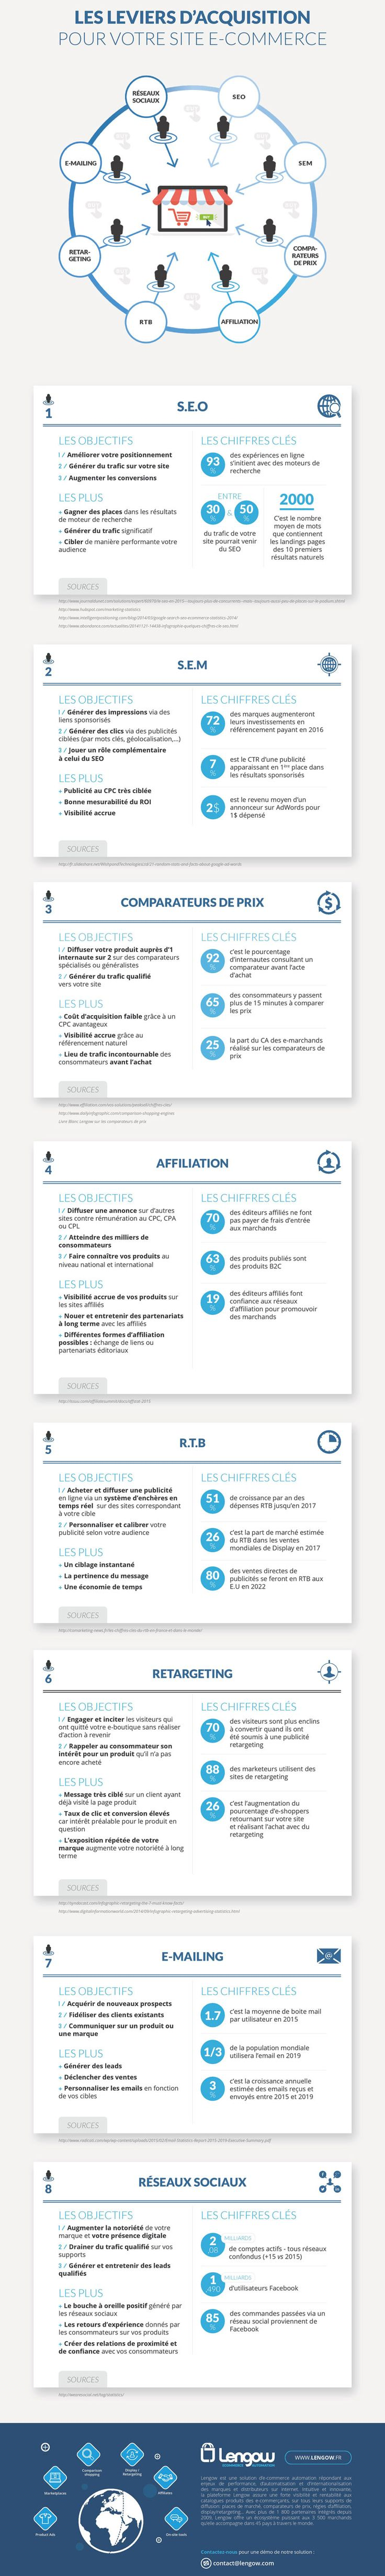 https://social-media-strategy-template.blogspot.com/ #DigitalMedia [Infographie] Les leviers d'acquisition les plus performants pour les sites e-commerce ? : Capitaine Commerce 3.6